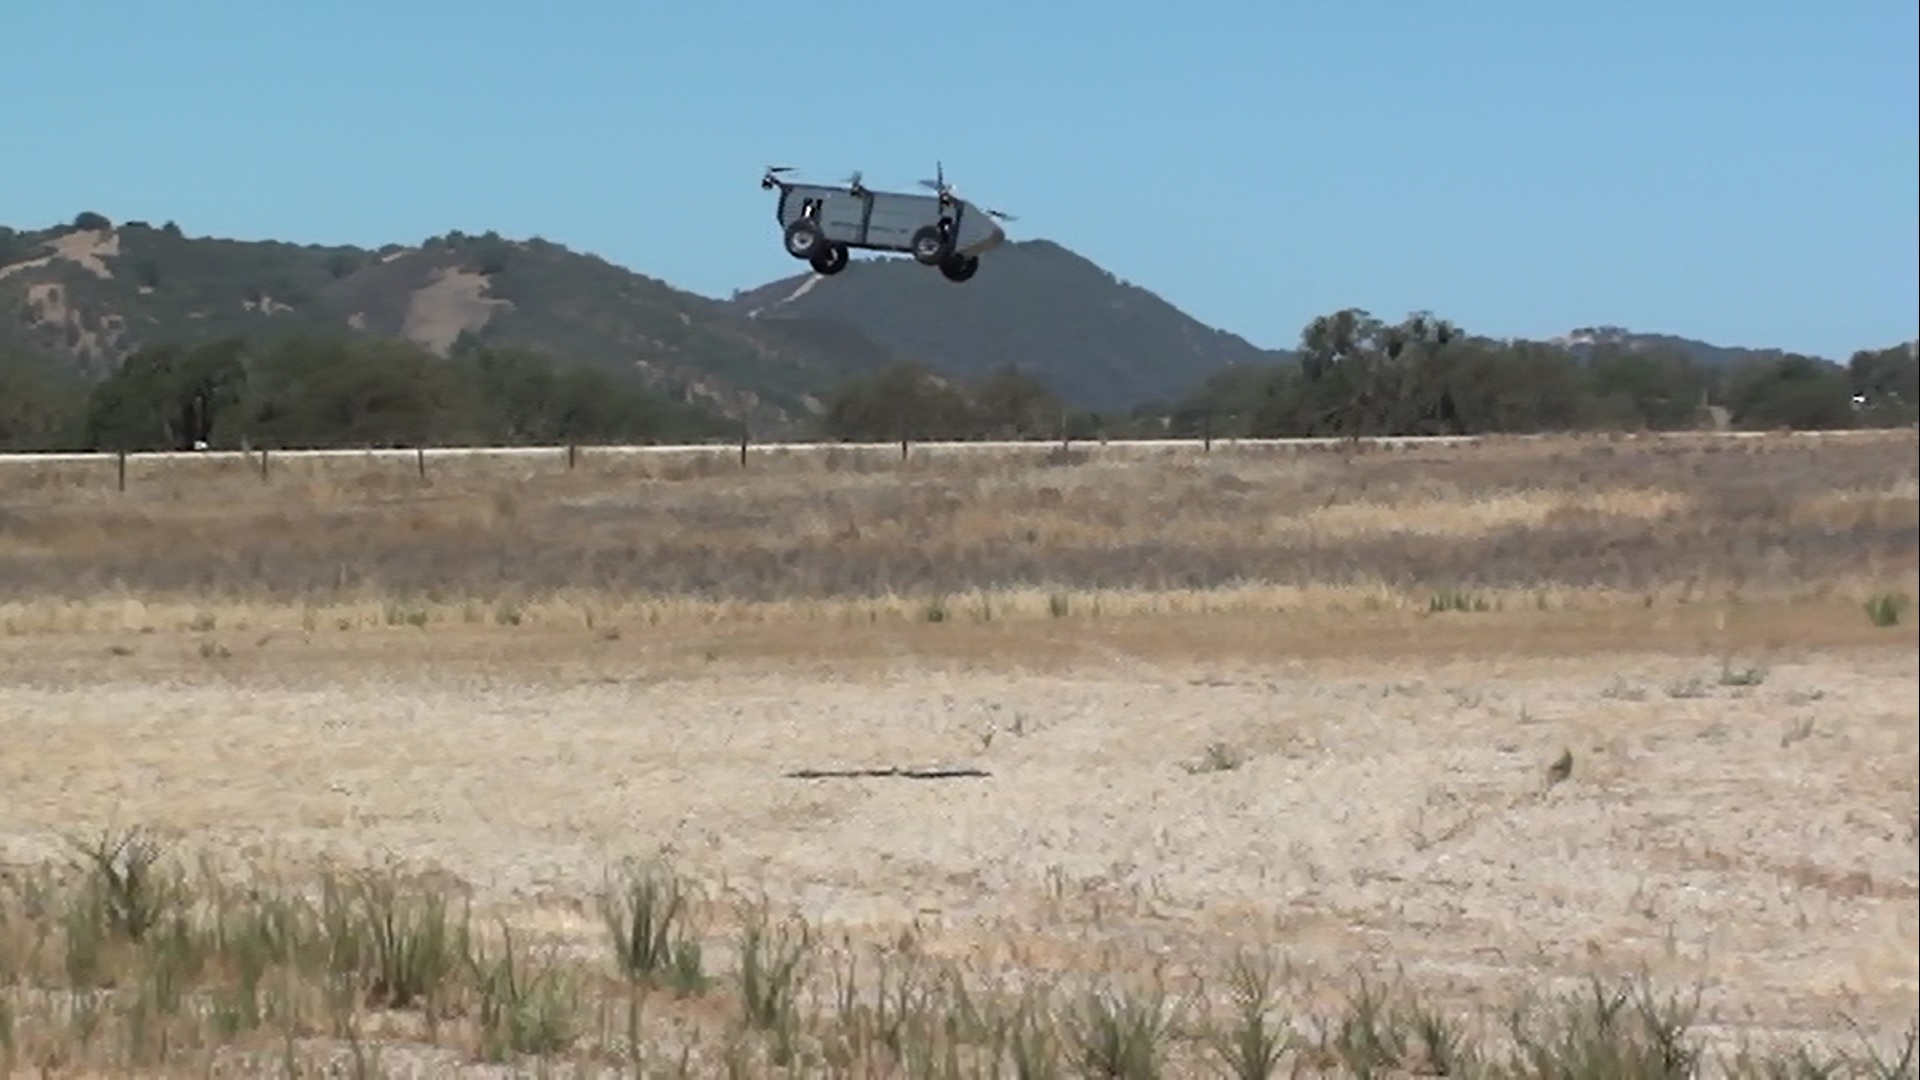 As a multi-rotor vehicle, the AT Panther Air/Ground Robot is highly maneuverable and easy to control.